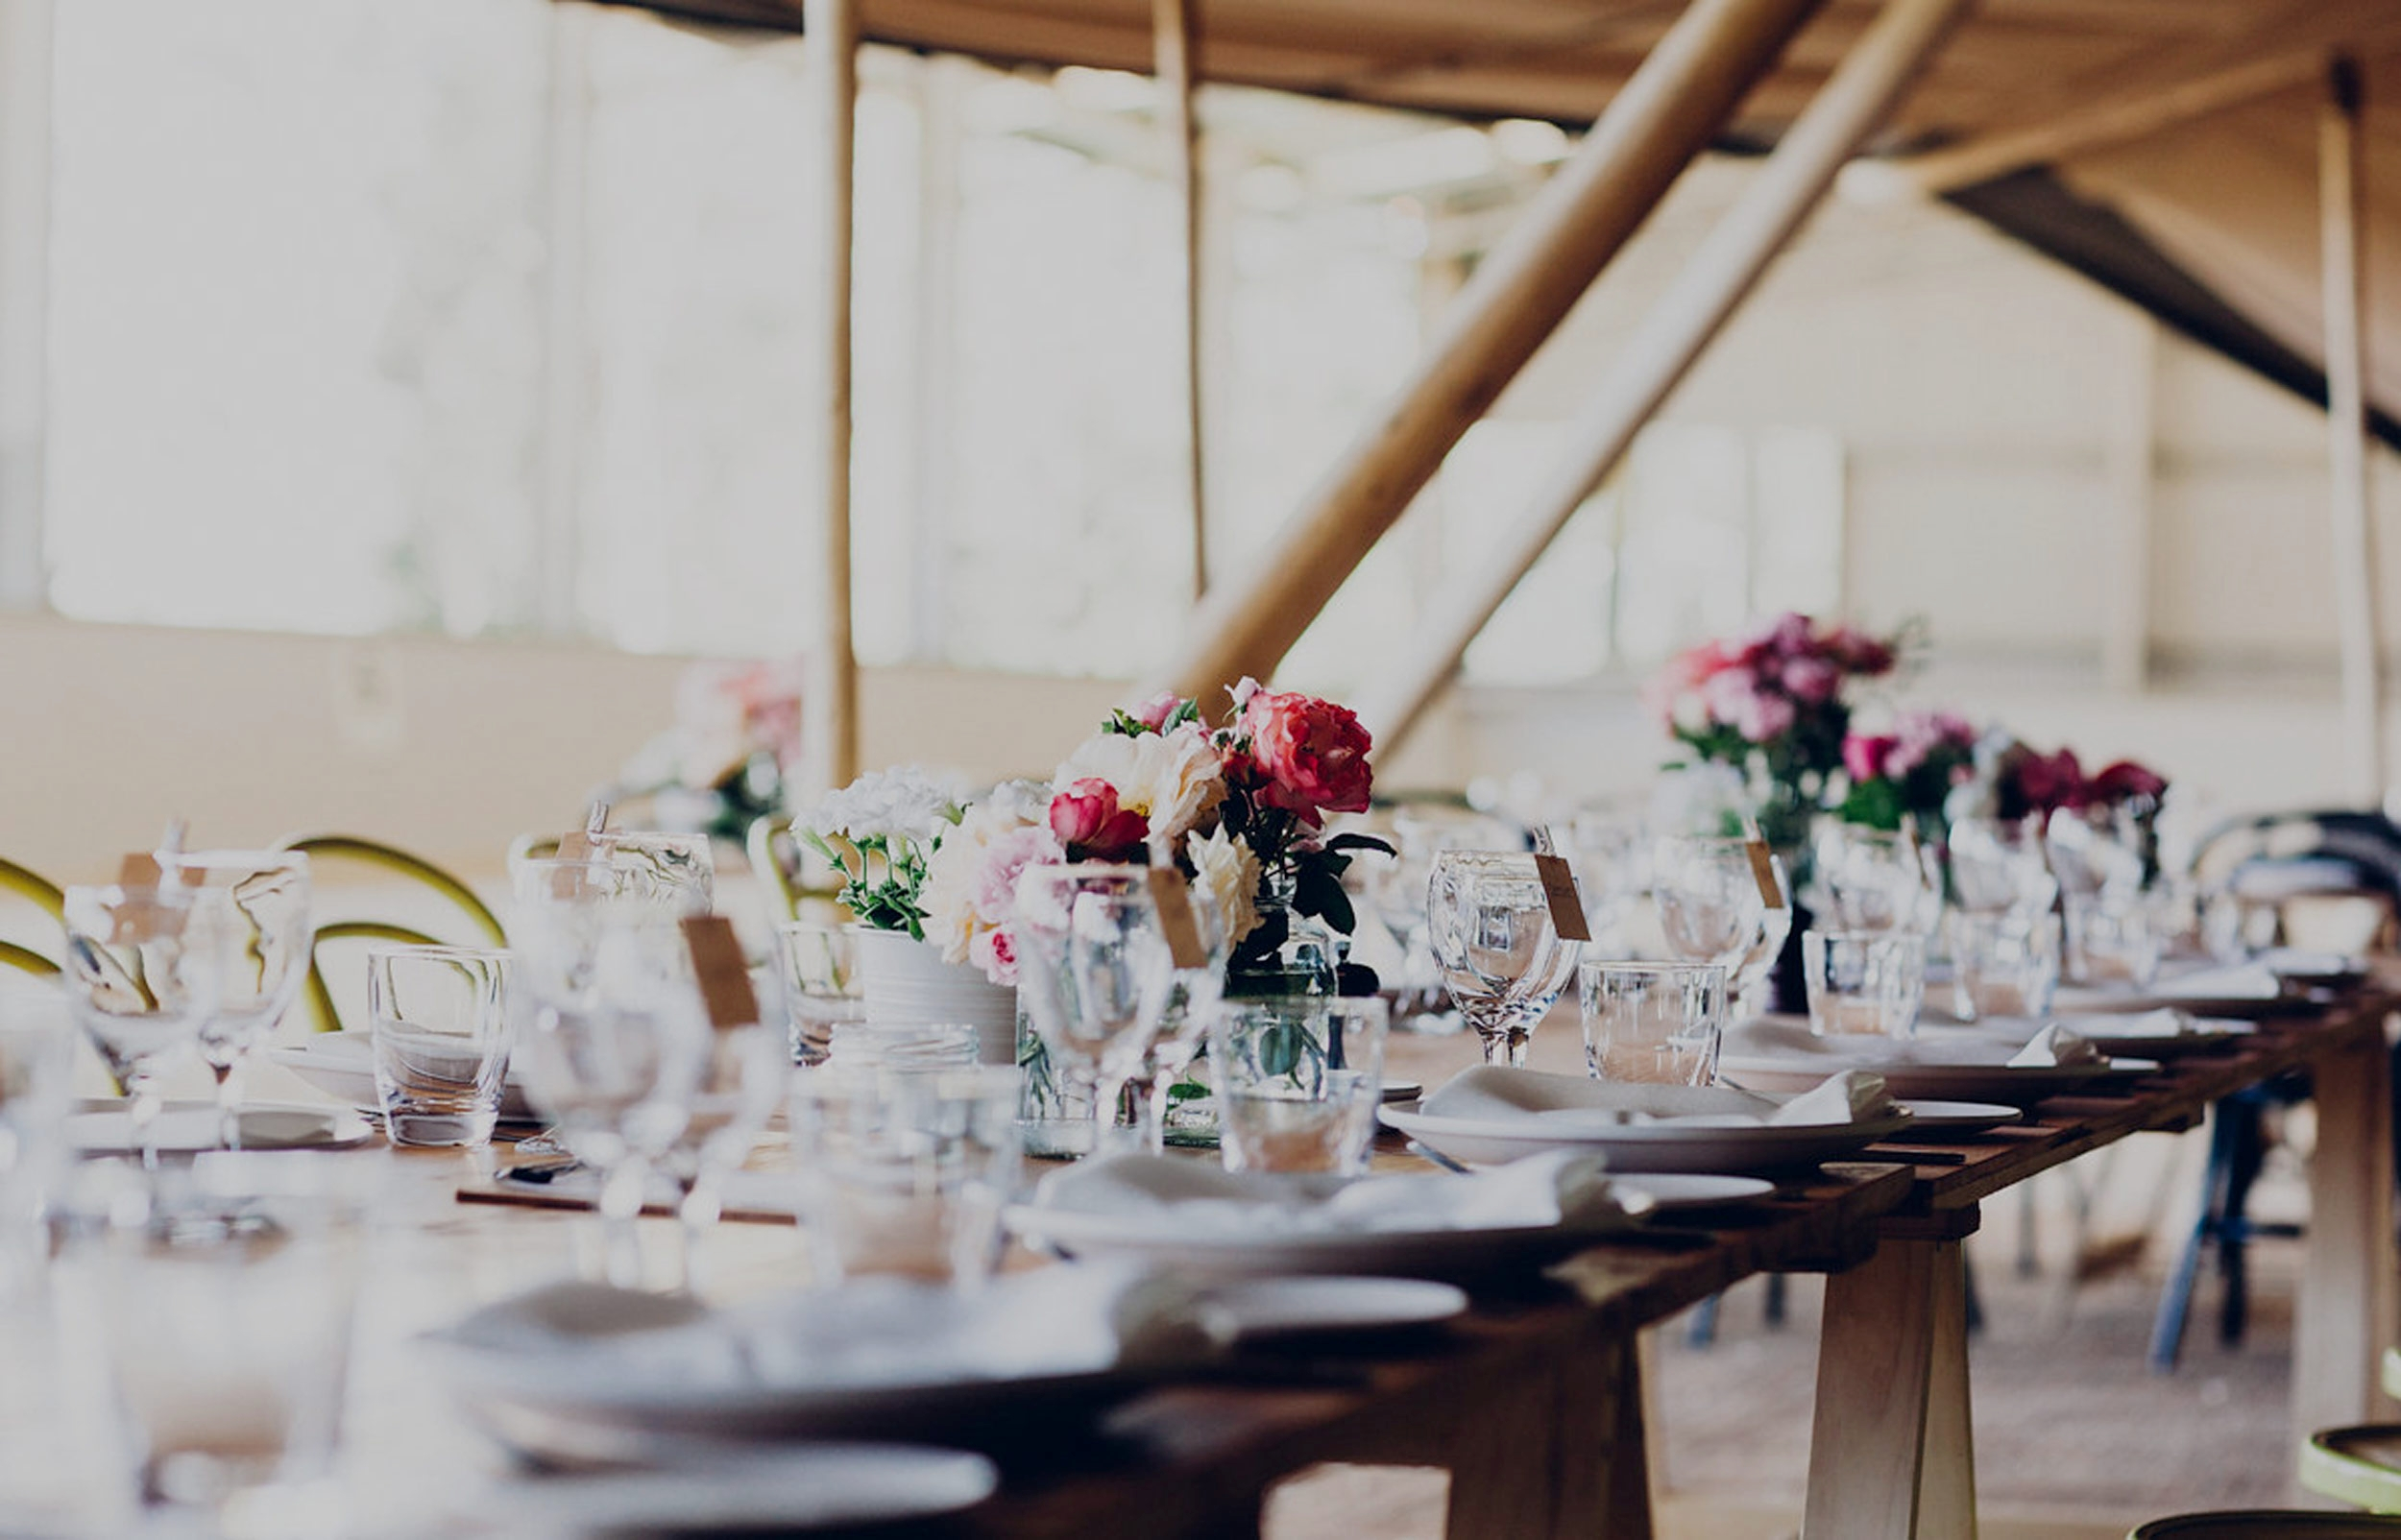 Not only was the food amazing, everyone loved it—your team was super efficient, extremely friendly and made the whole event a family affair!   TRISH, MOTHER OF THE BRIDE